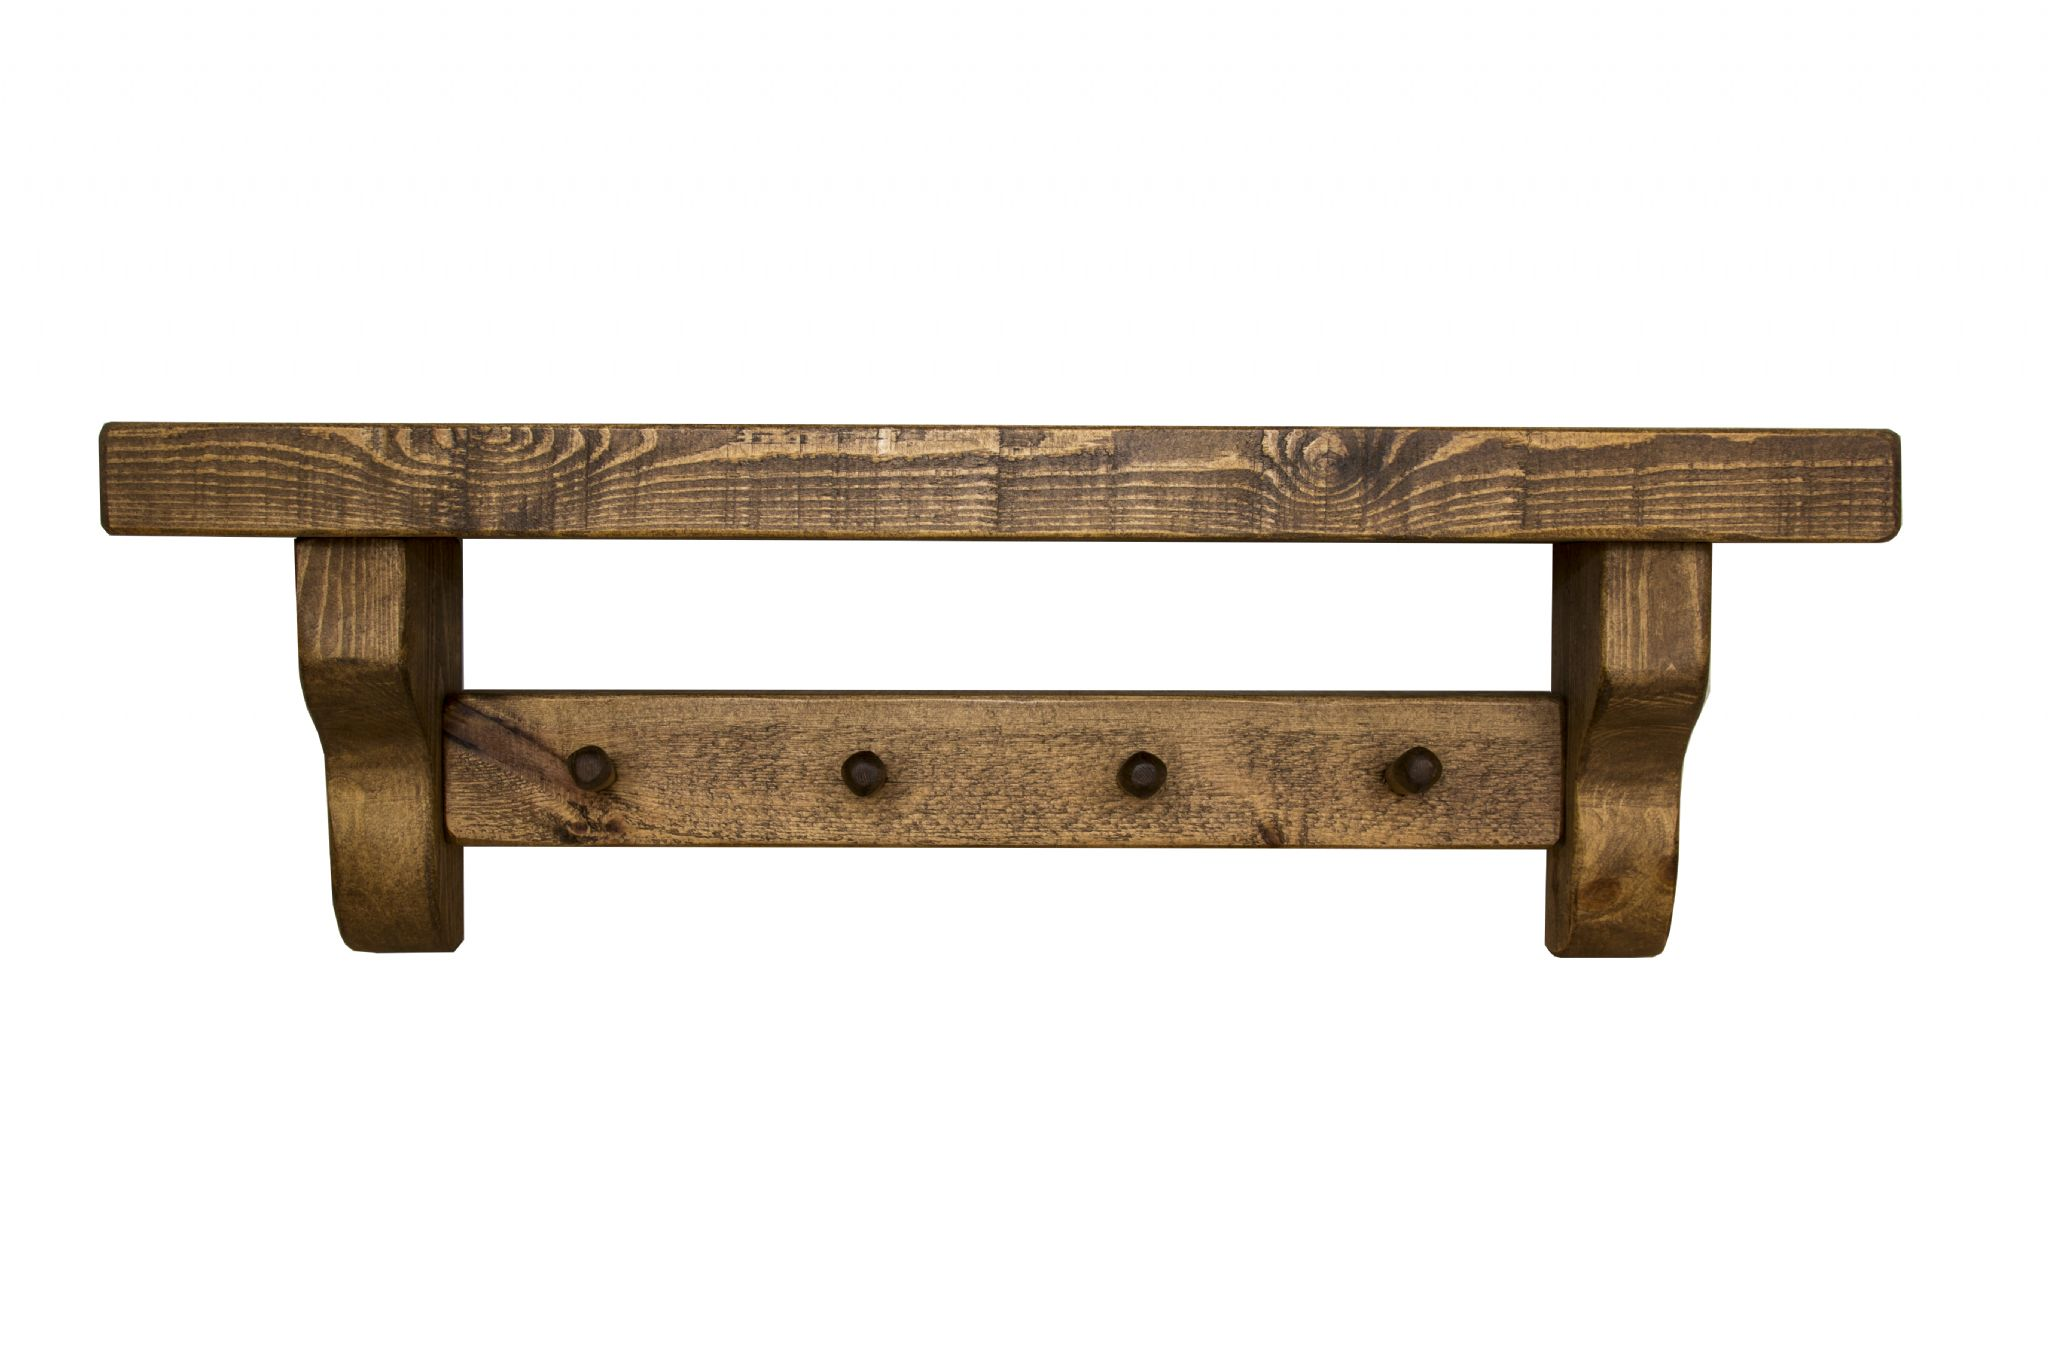 Rustic wooden shelf with coat pegs.